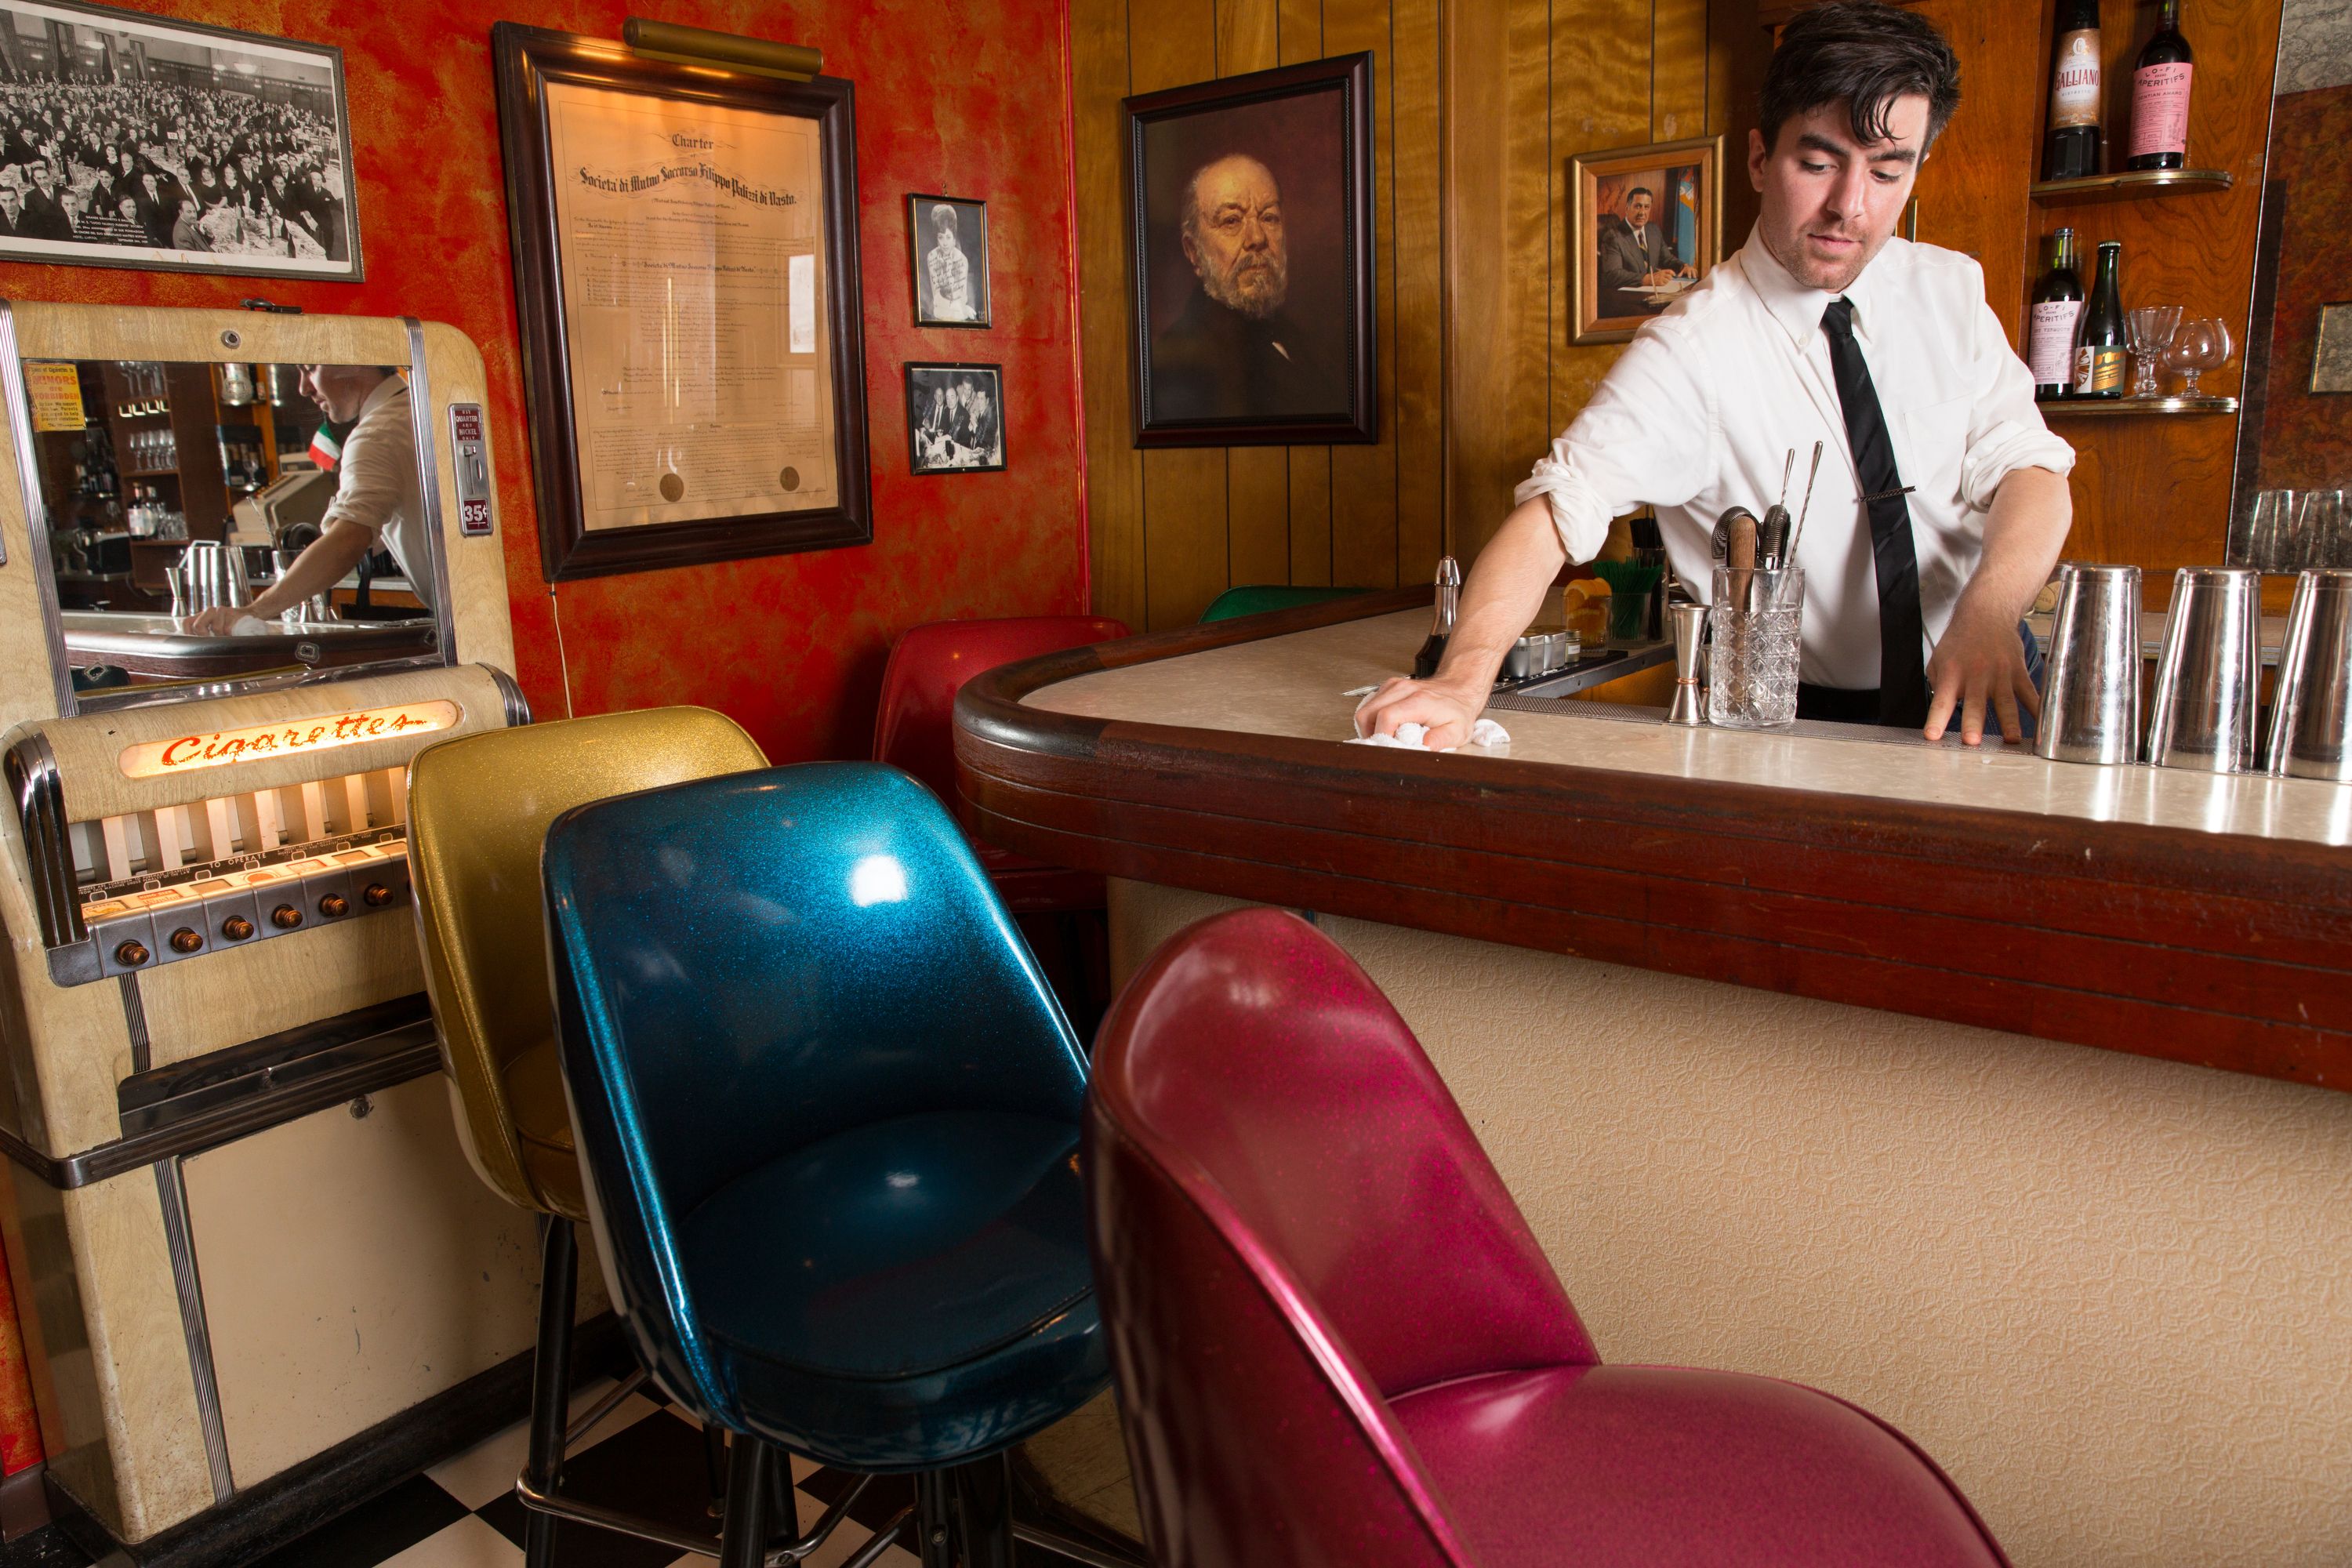 Bar manager Max Sherman mixes drinks at the Palizzi Social Club, 1408 South 12th St, in Philadelphia, Thursday, June 8, 2017.